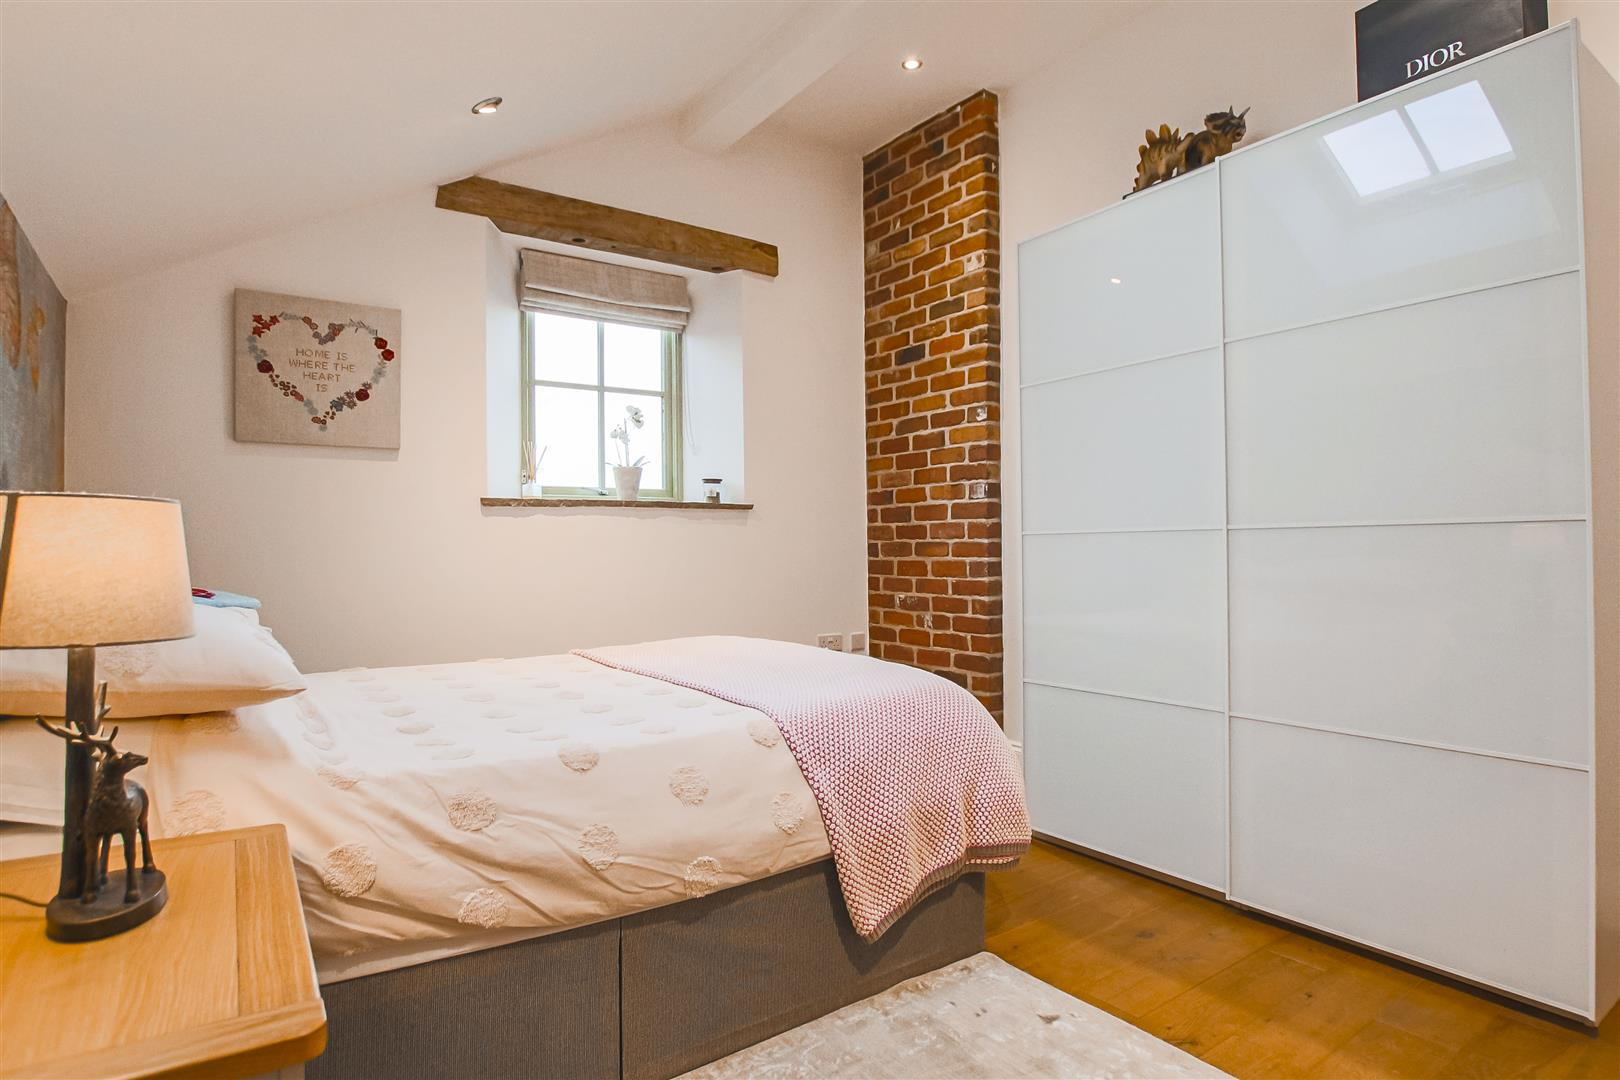 4 Bedroom Barn Conversion For Sale - Bedroom 2